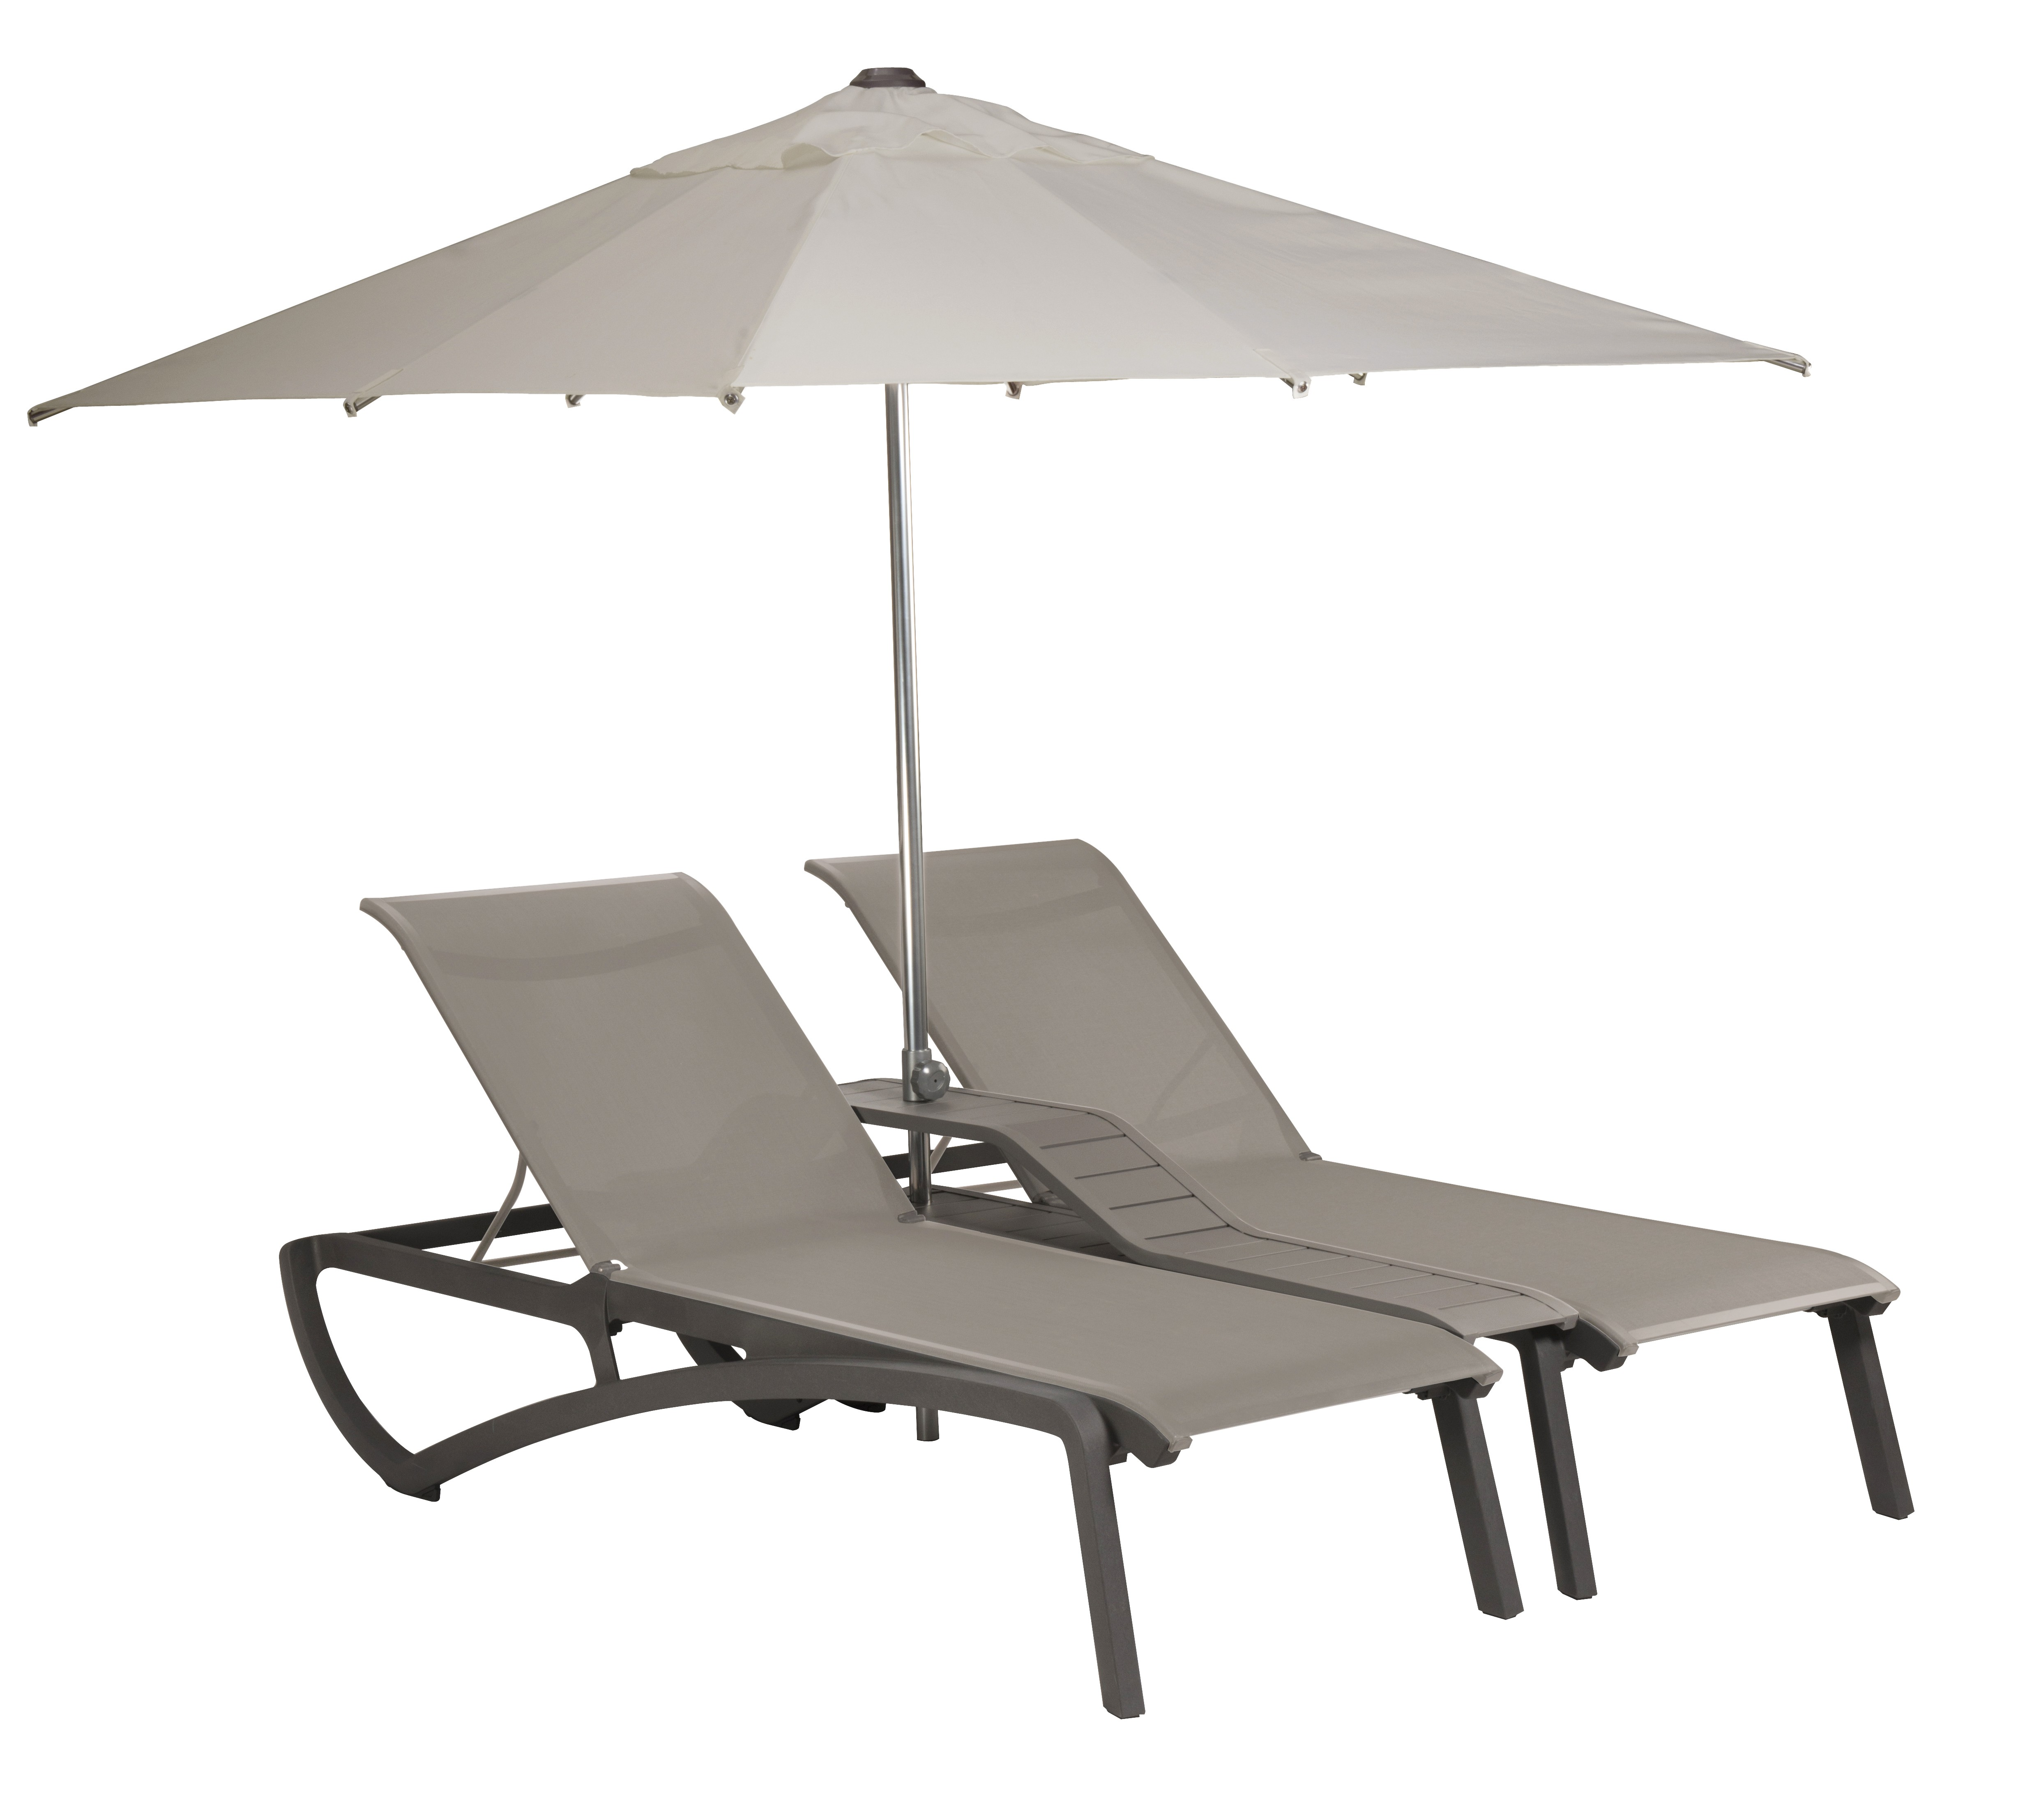 double bain de soleil sunset noir toile grise parasol. Black Bedroom Furniture Sets. Home Design Ideas